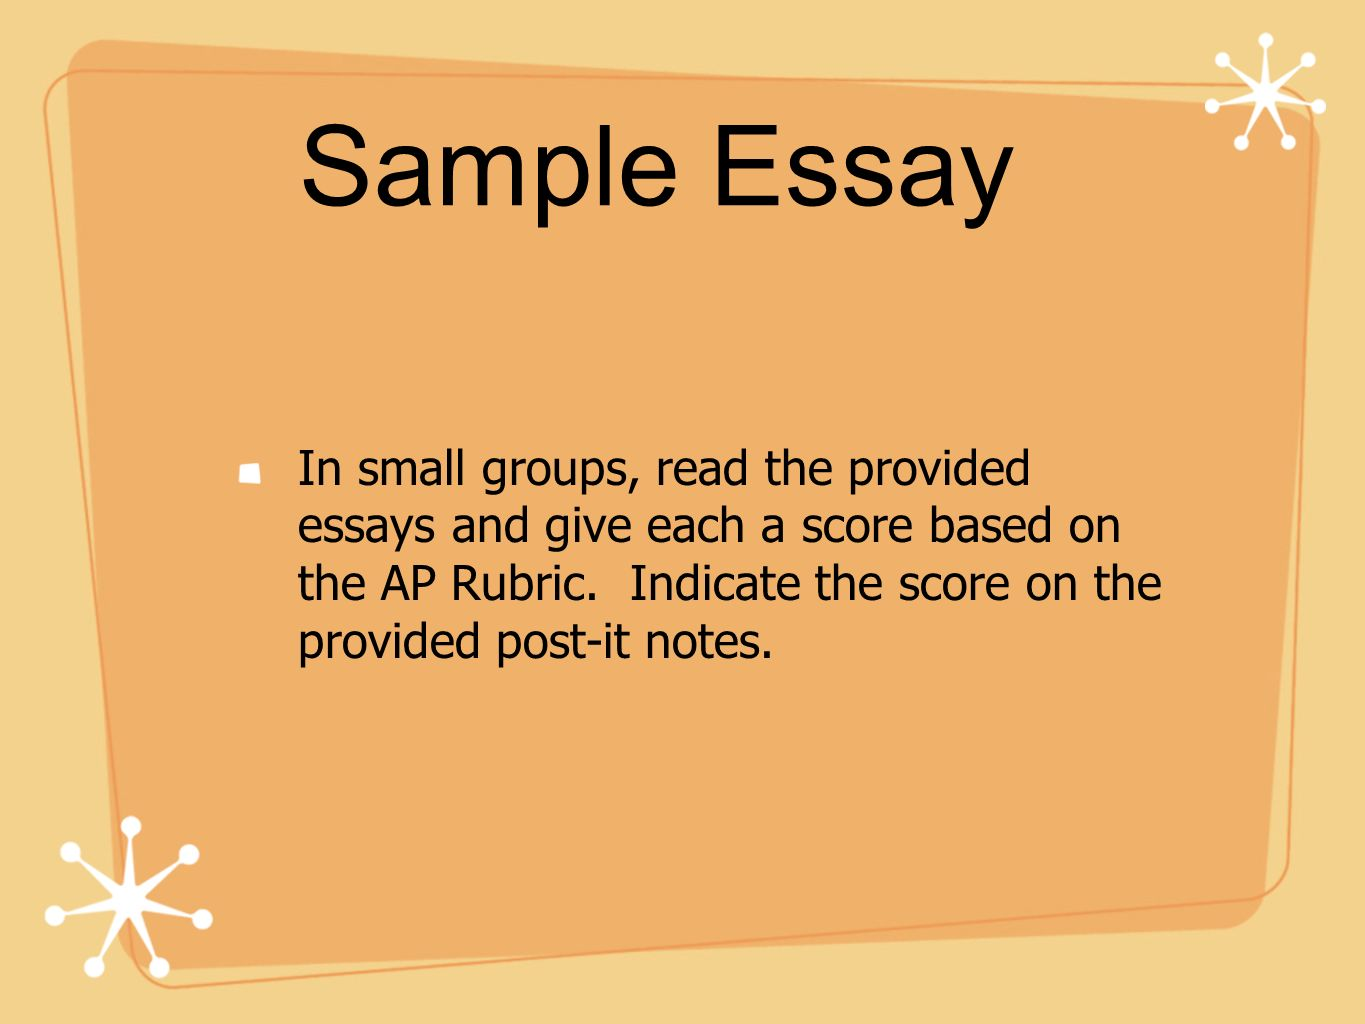 ap literature and composition essays questions Ap english literature and composition 2001 free-response questions these materials were produced by educational testing service (ets), which develops and administers the examinations of the advanced placement.